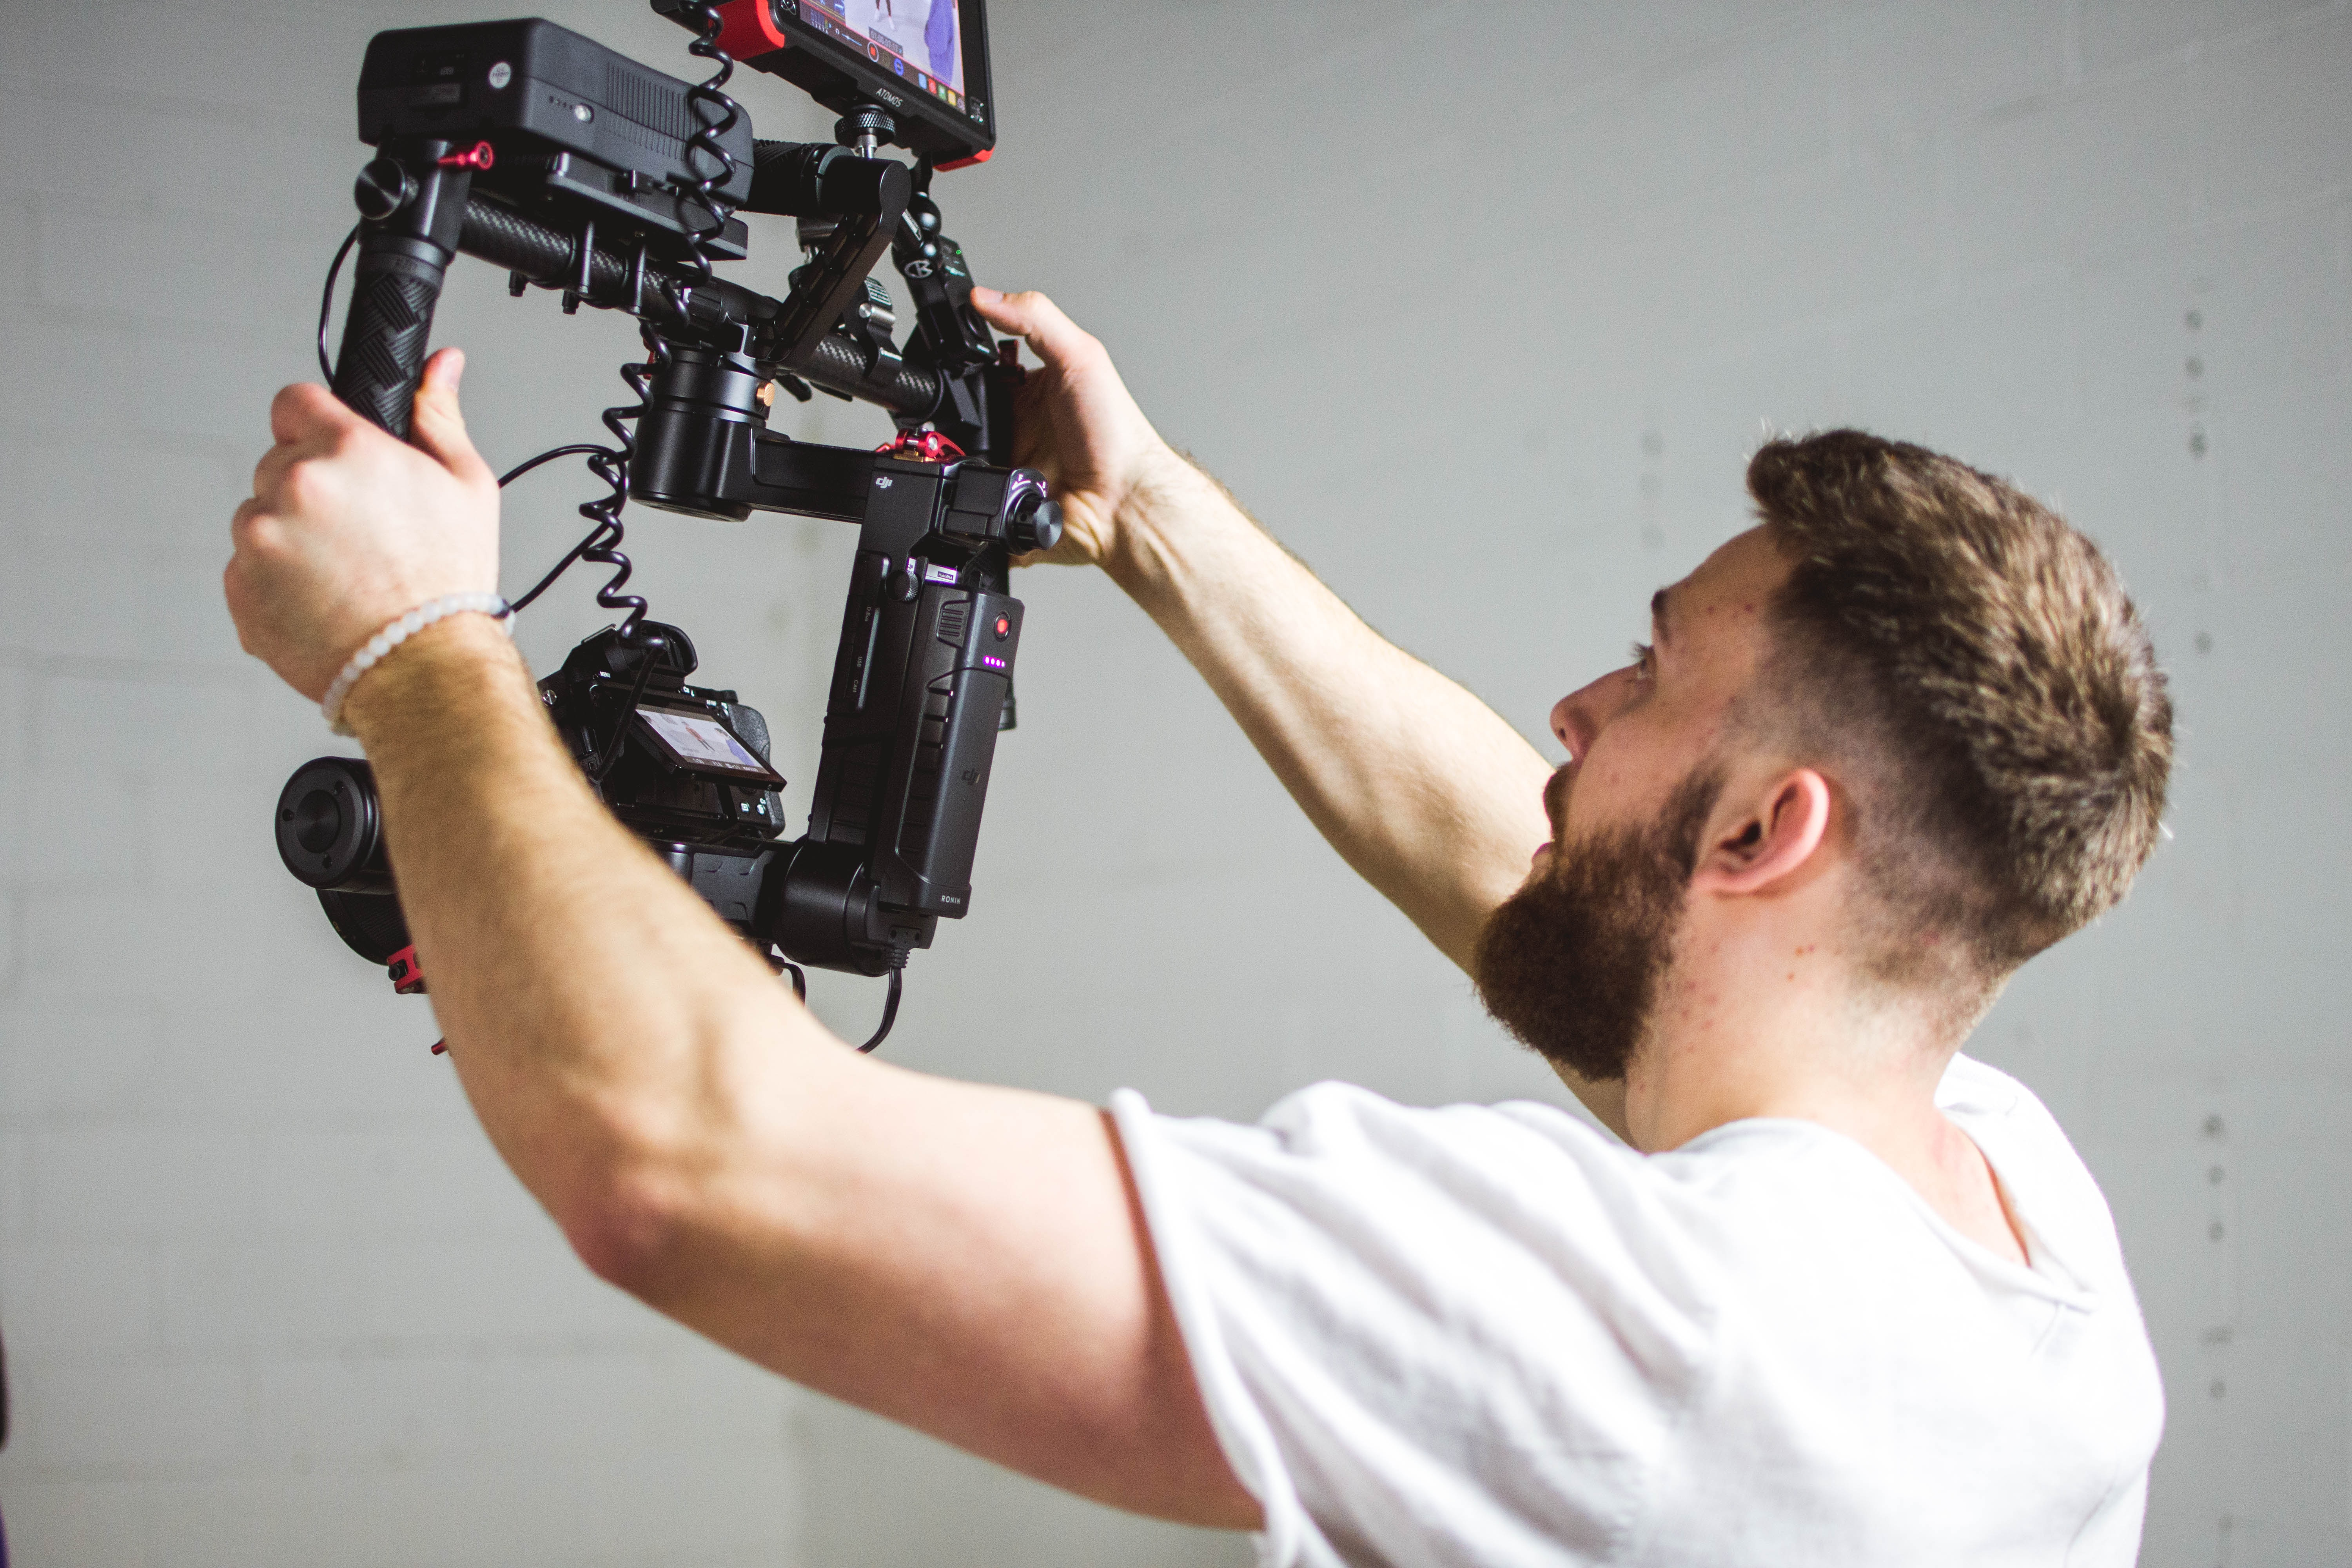 Filmmaking with a Gimbal